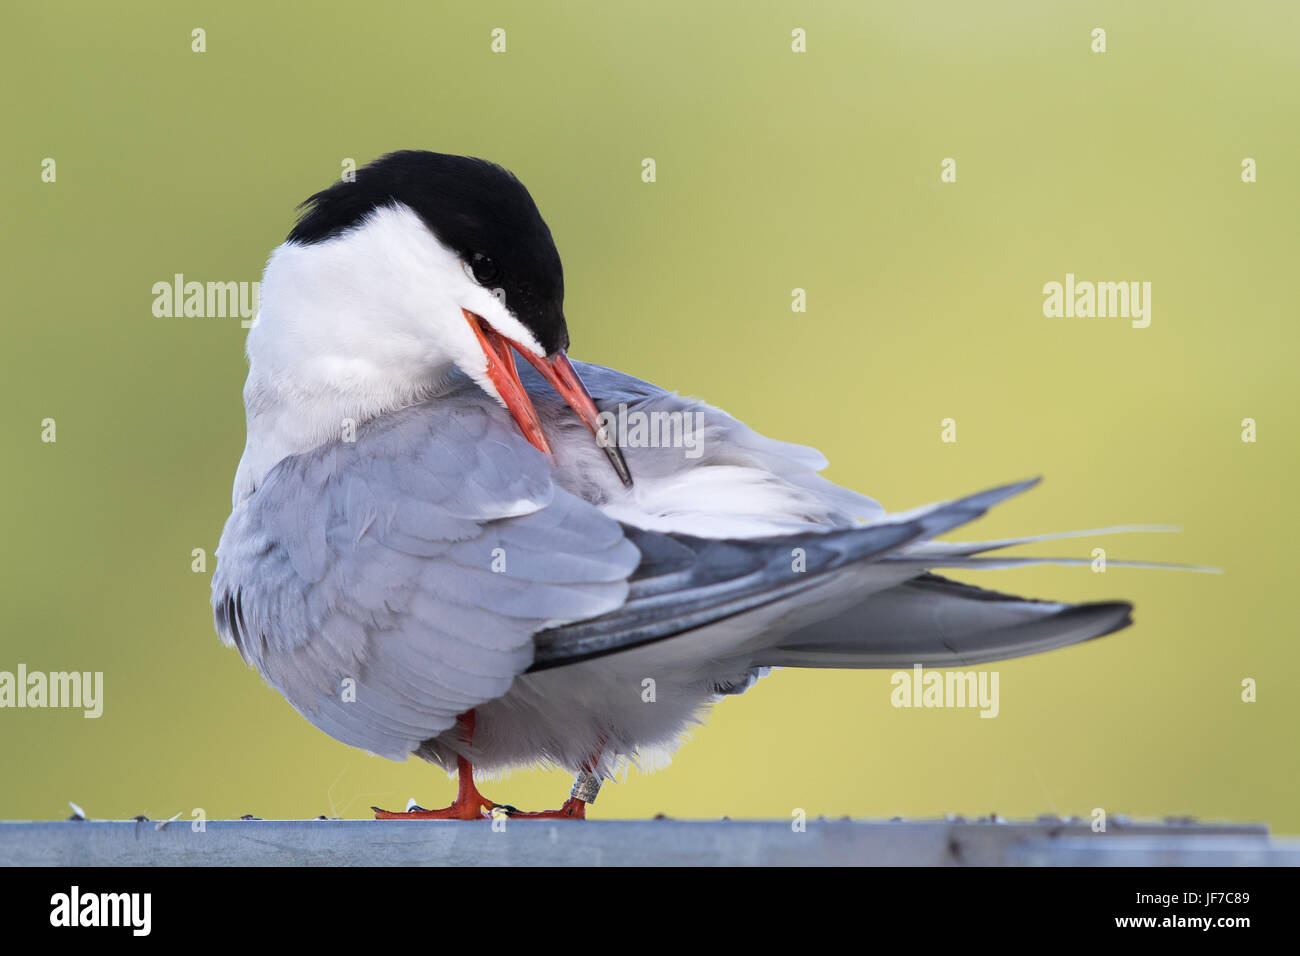 Common Tern (Sterna hirundo) preening while perched on a fence - Stock Image